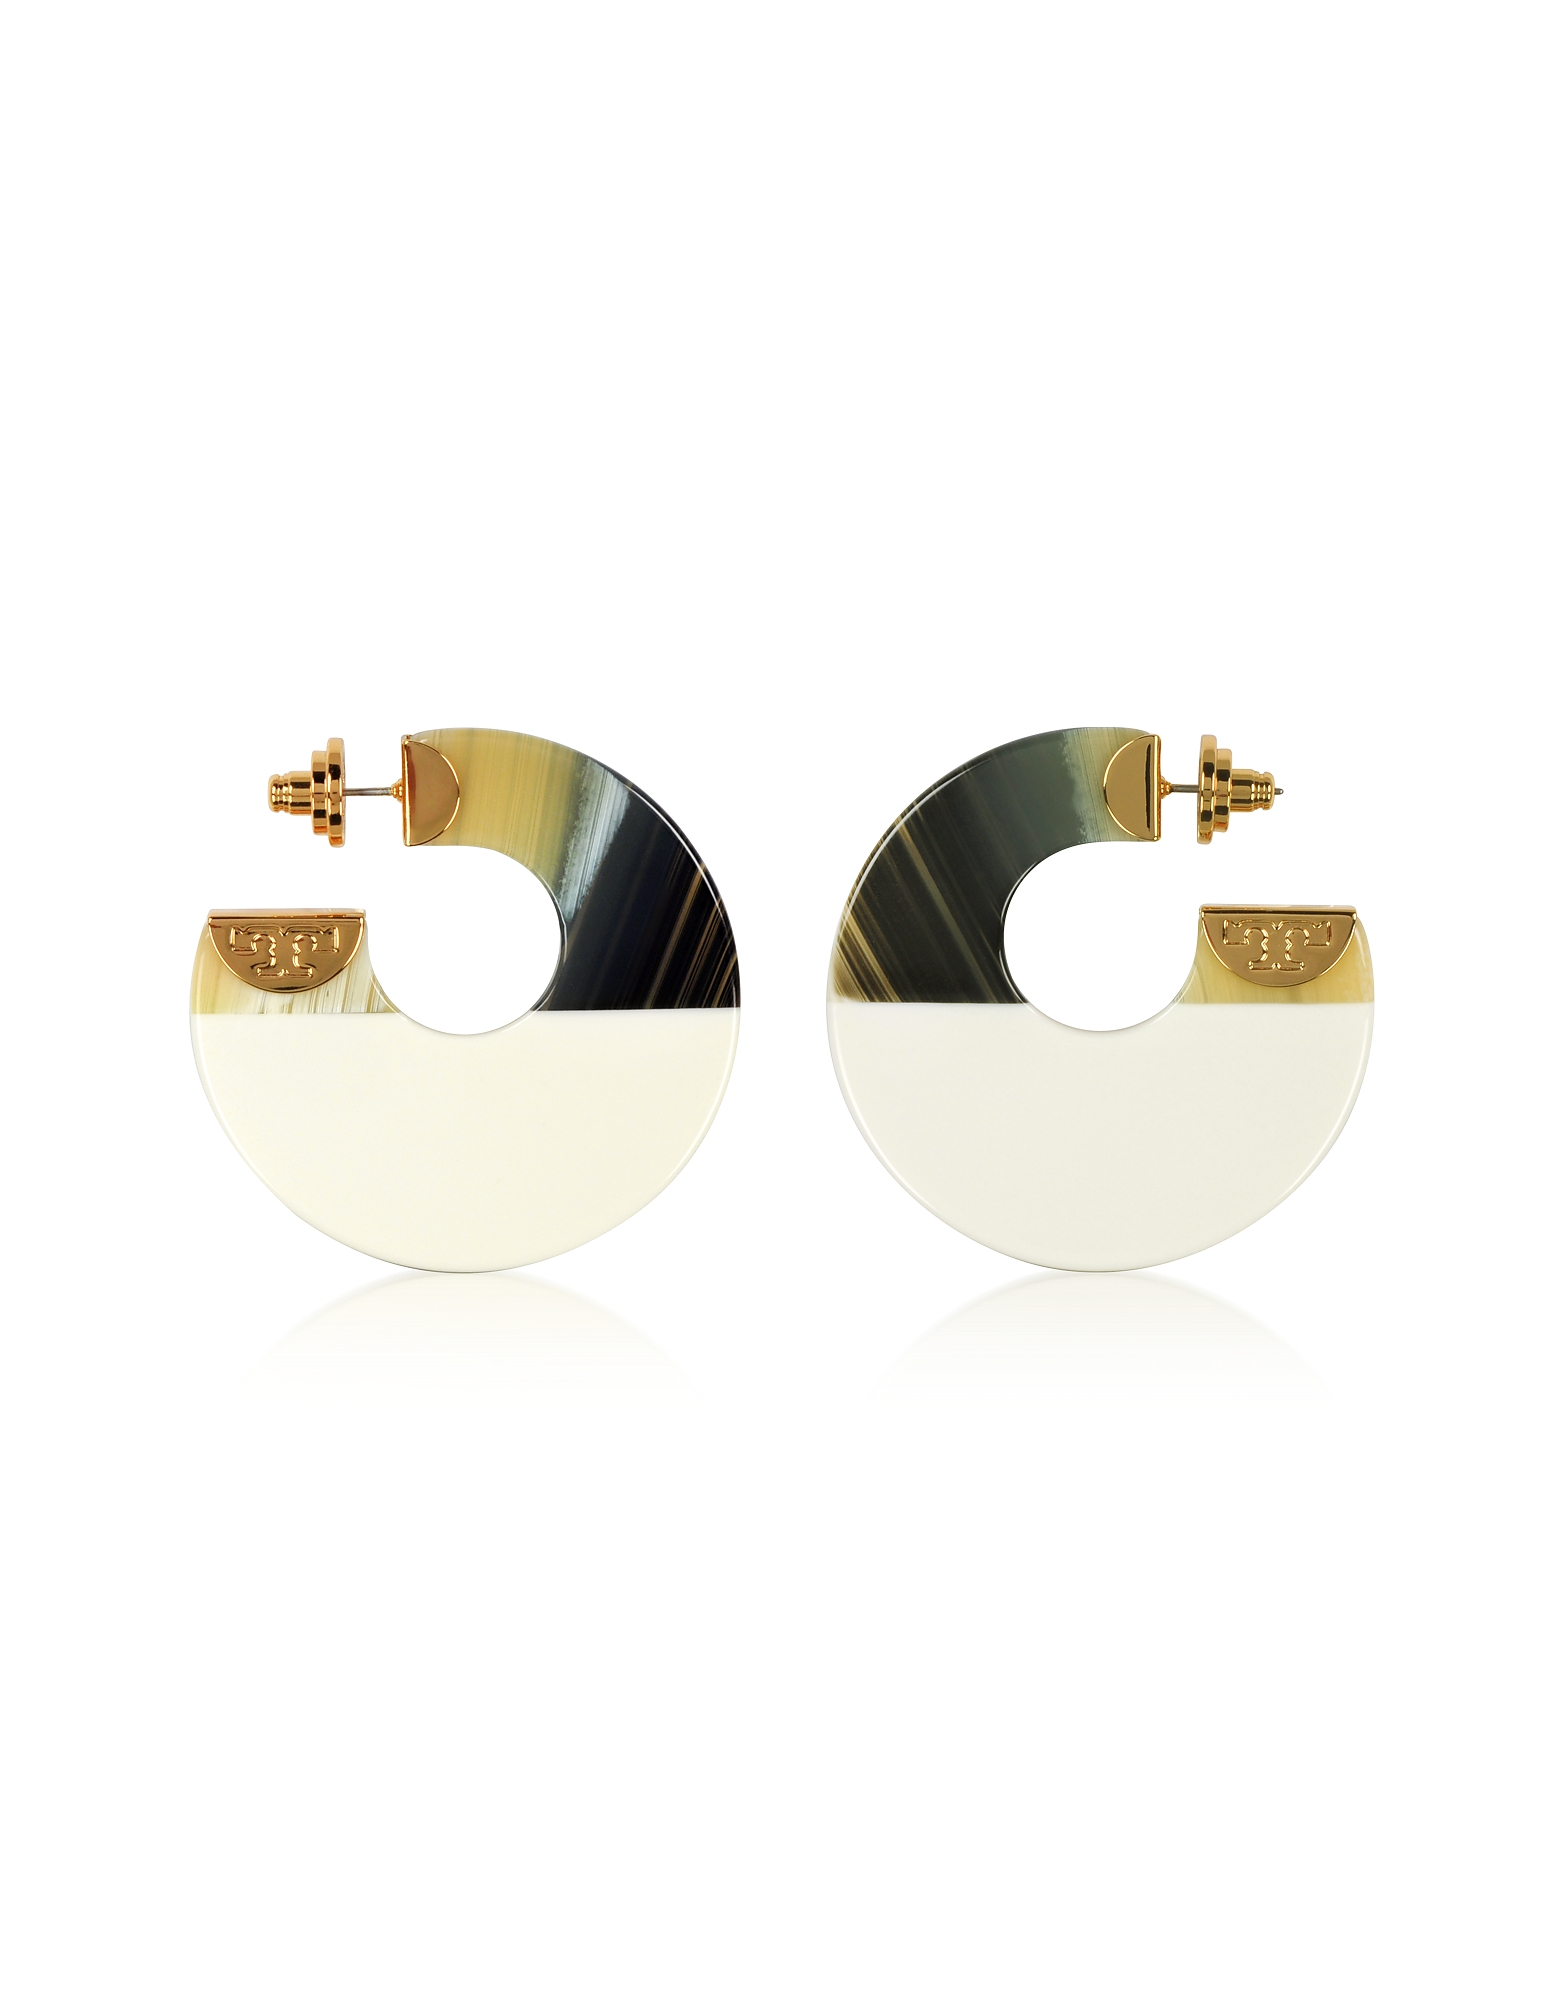 Tory Burch Earrings, Resin Color Block Hoop Earrings